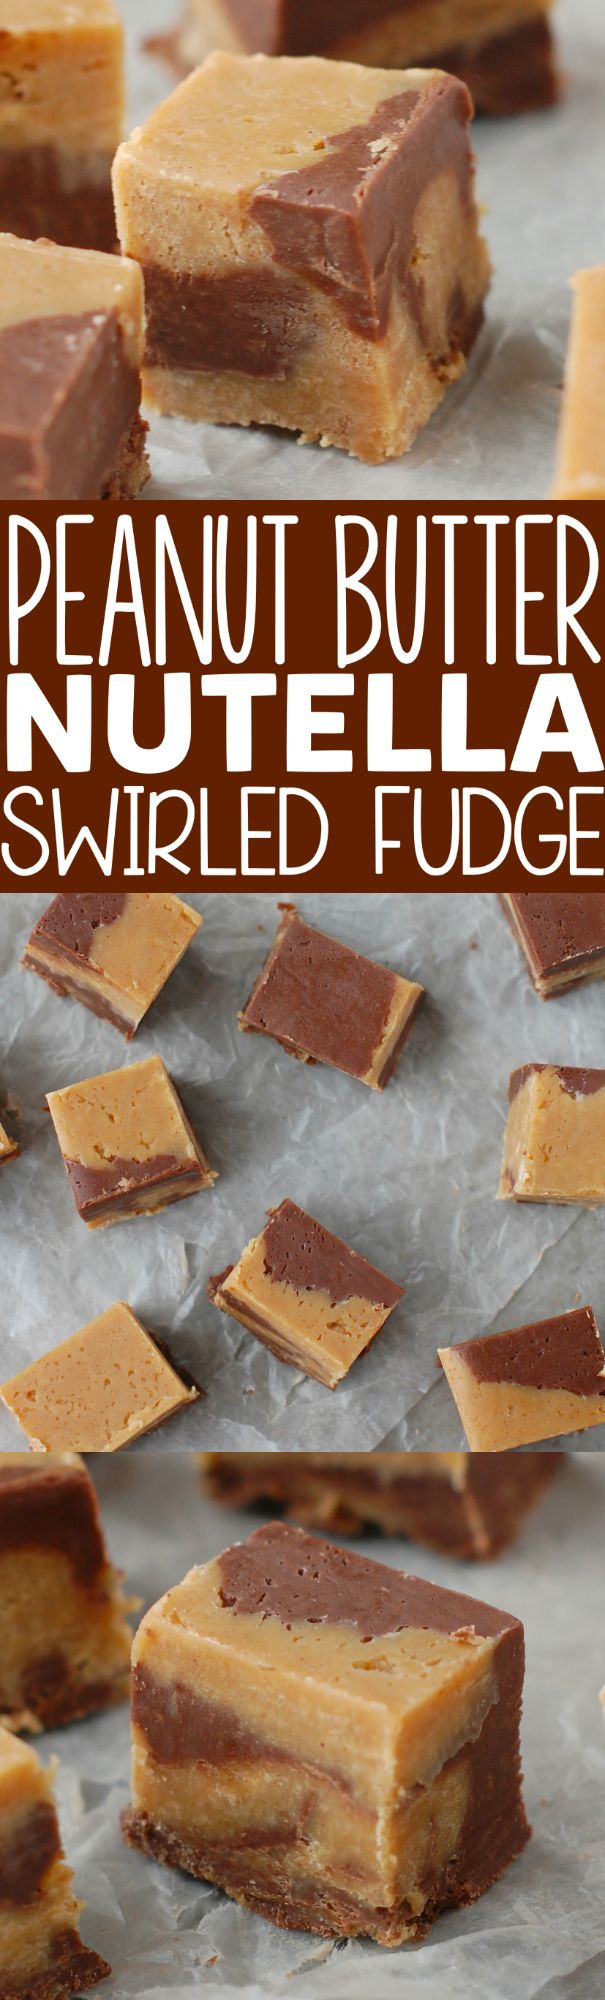 This Peanut Butter Nutella Swirled Fudge is the perfect combo of your favorites!